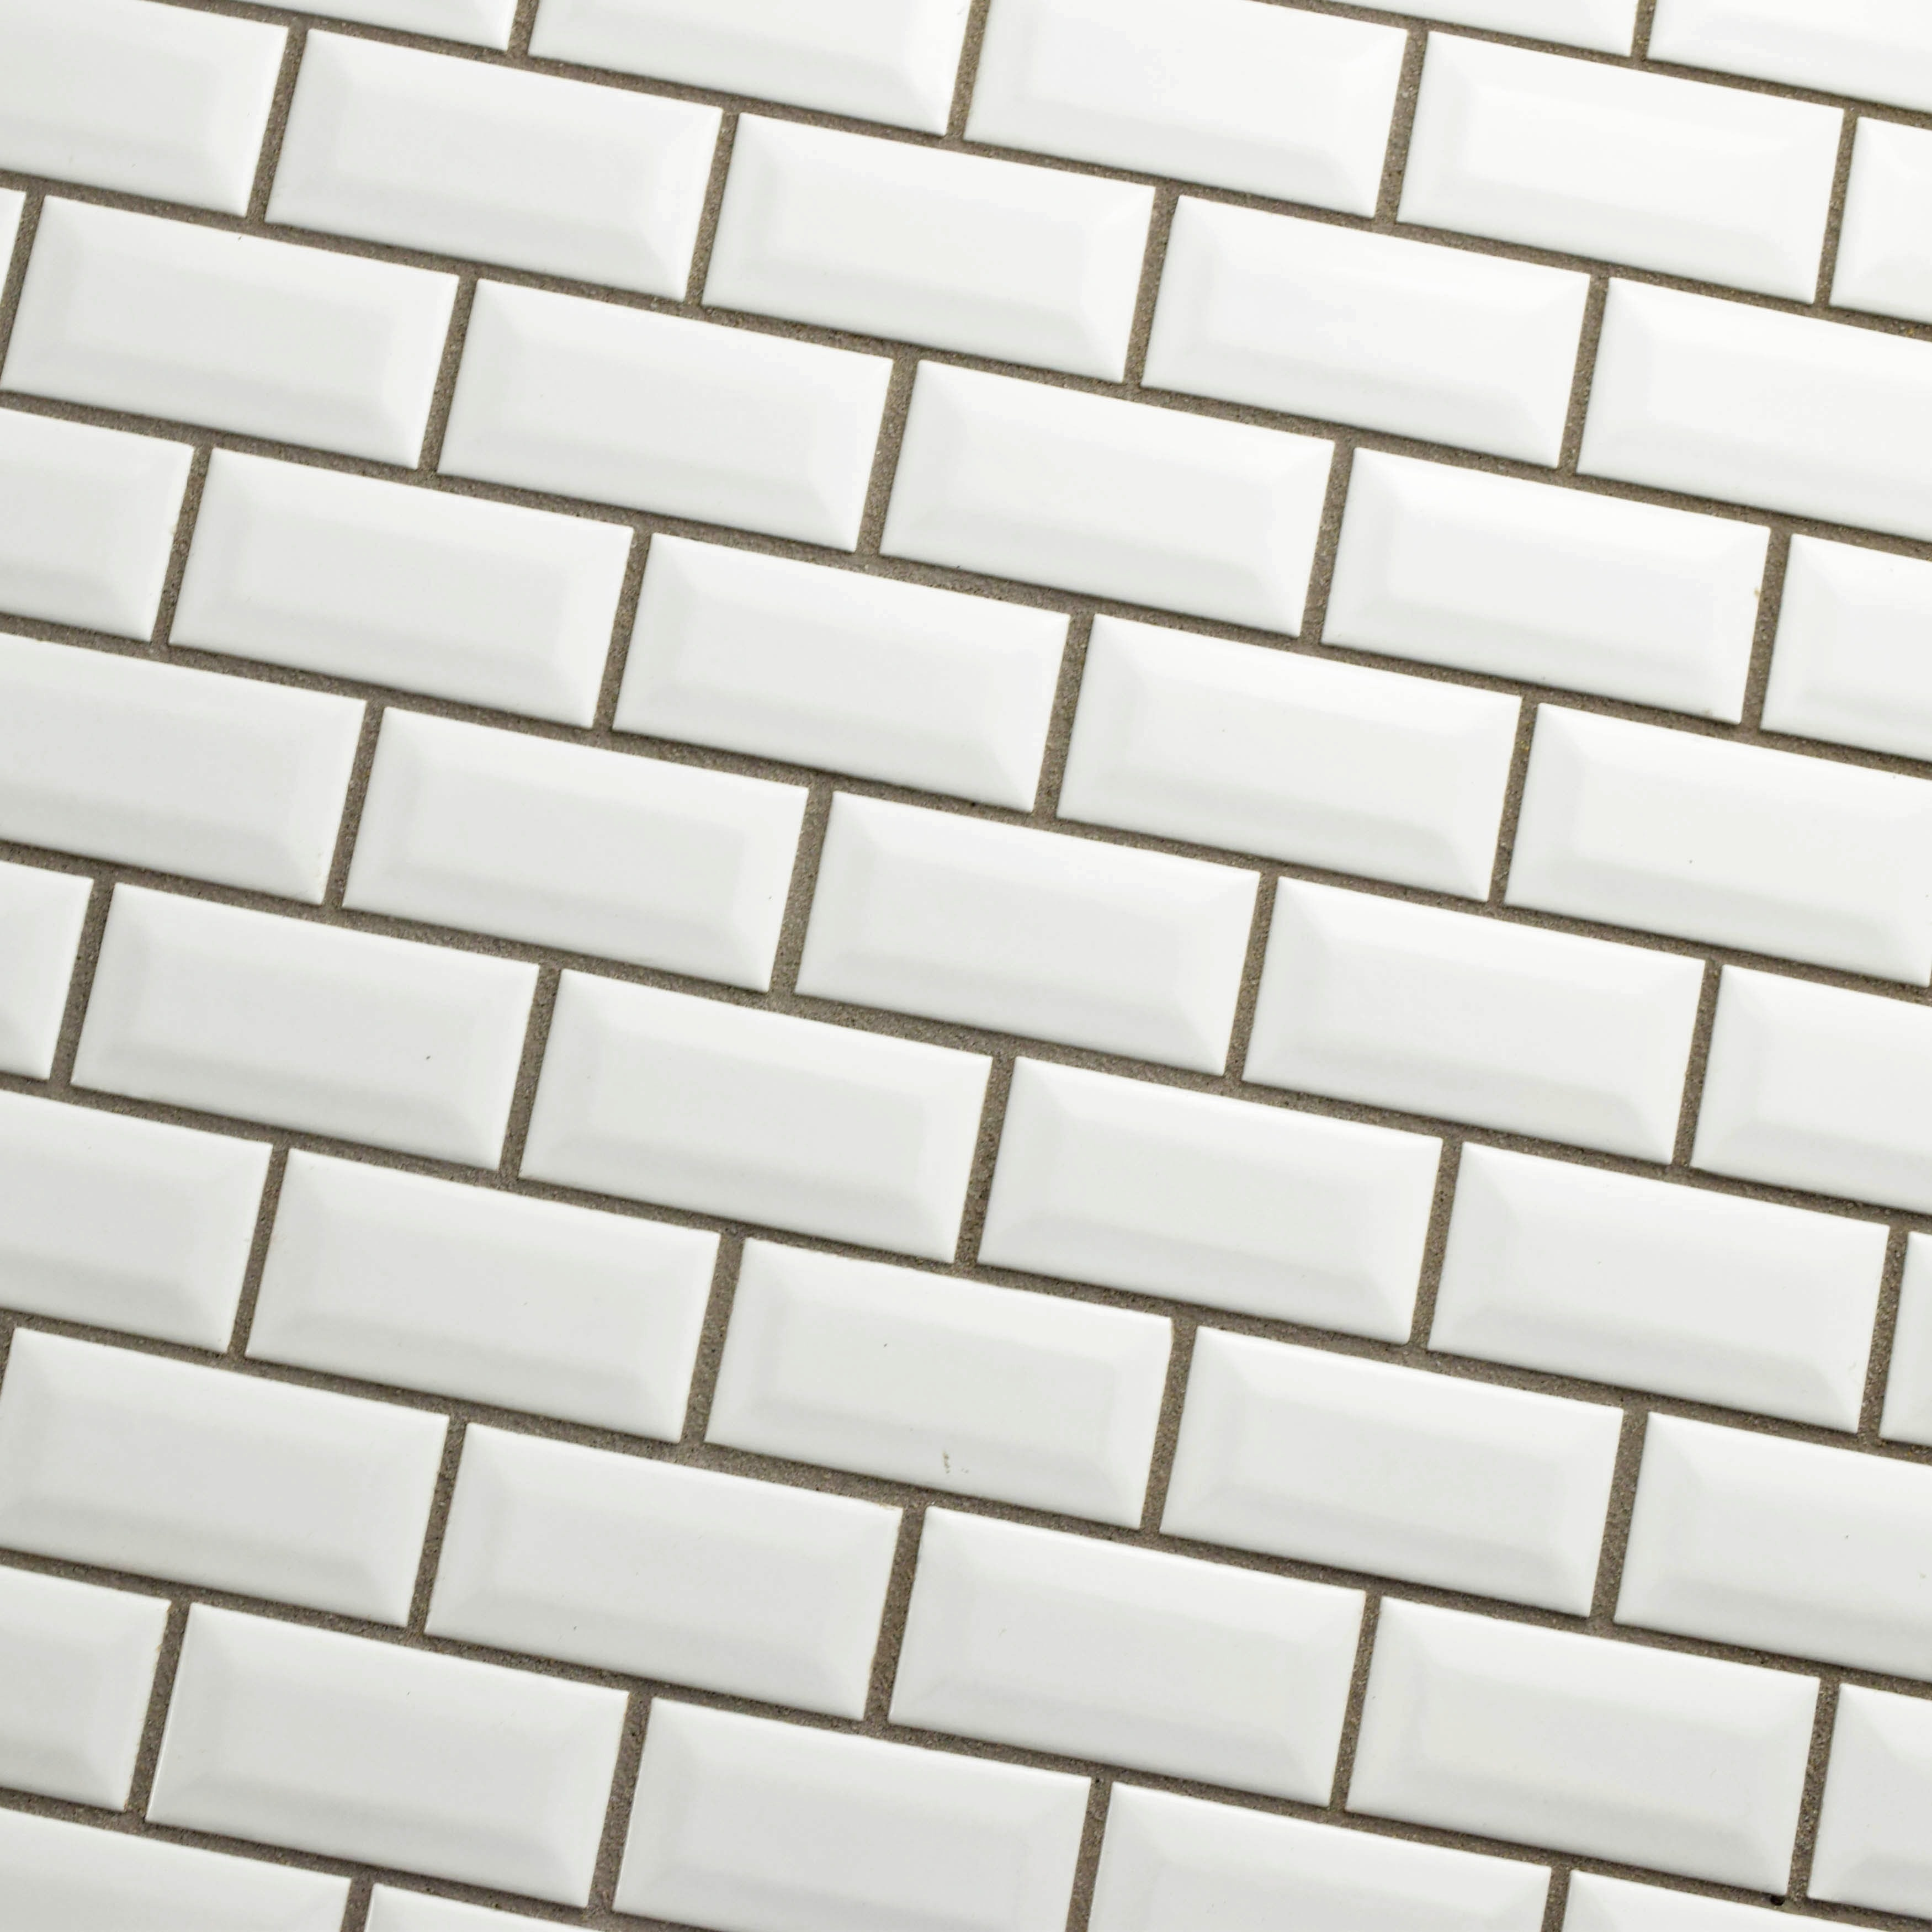 Somertile 12x12 inch victorian subway beveled white porcelain somertile 12x12 inch victorian subway beveled white porcelain mosaic floor and wall tile case of 10 free shipping today overstock 15251537 dailygadgetfo Gallery